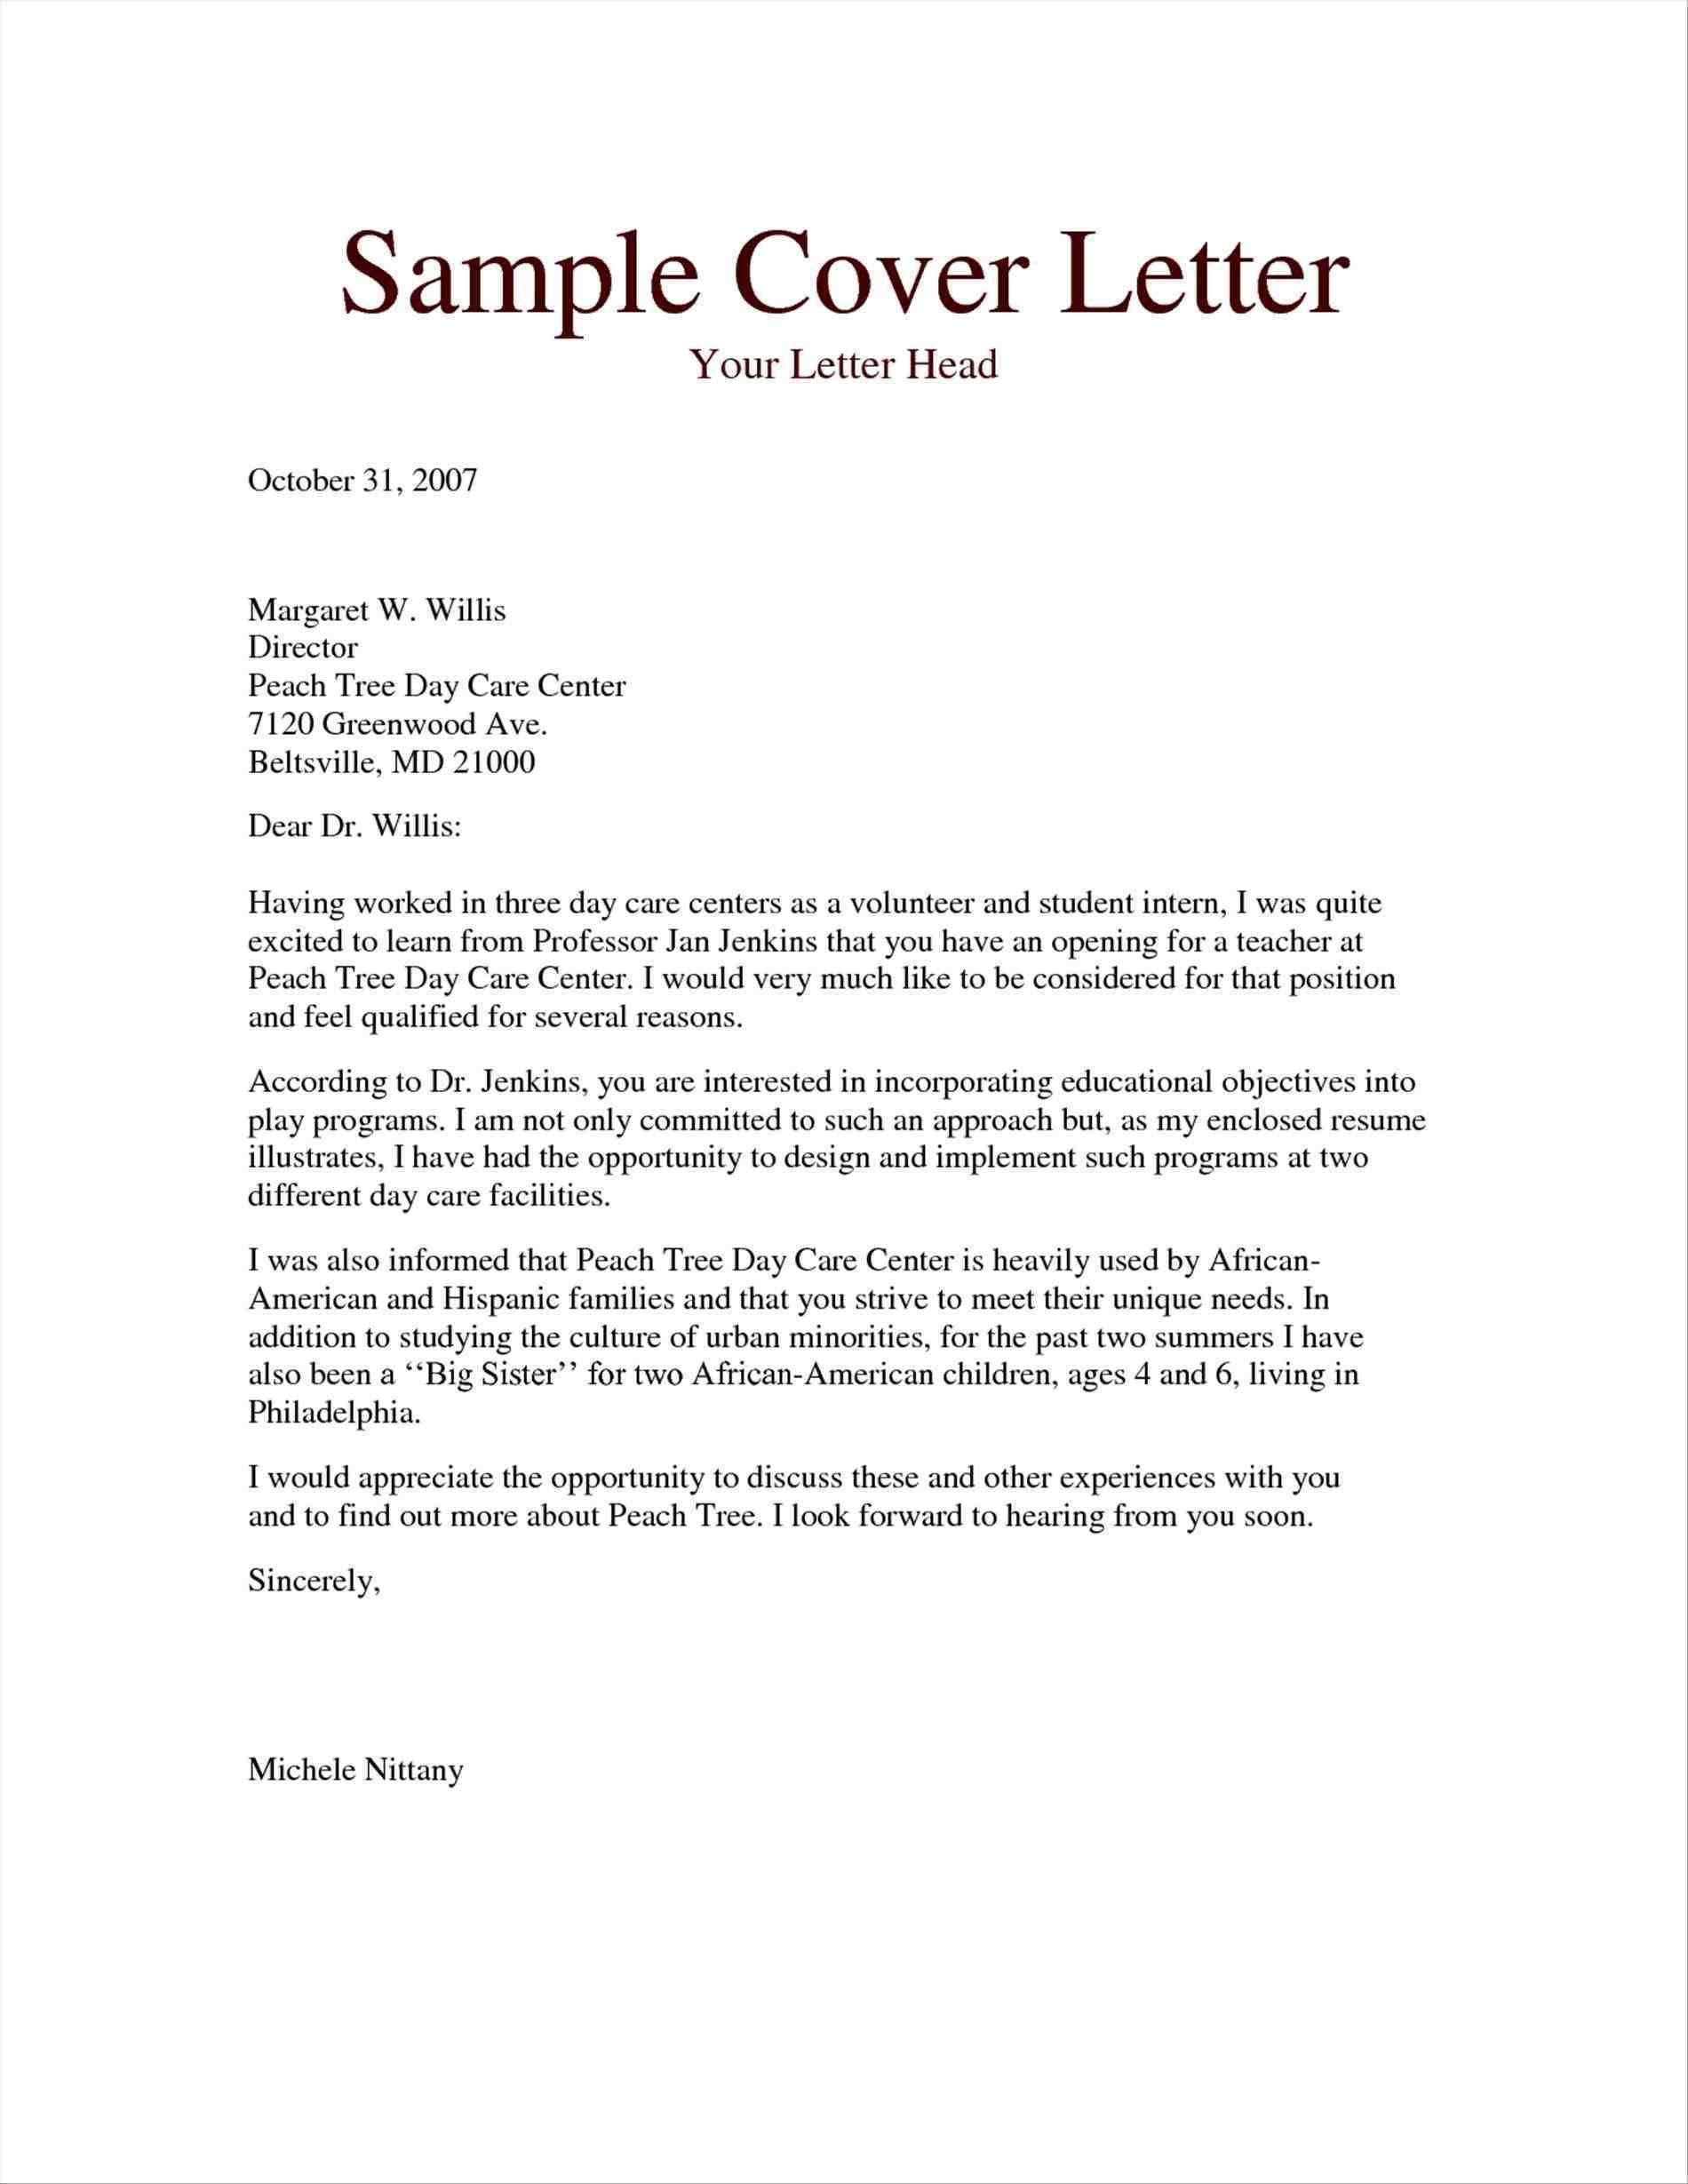 Pin by Joanna Keysa on Free Tamplate  Cover letter for